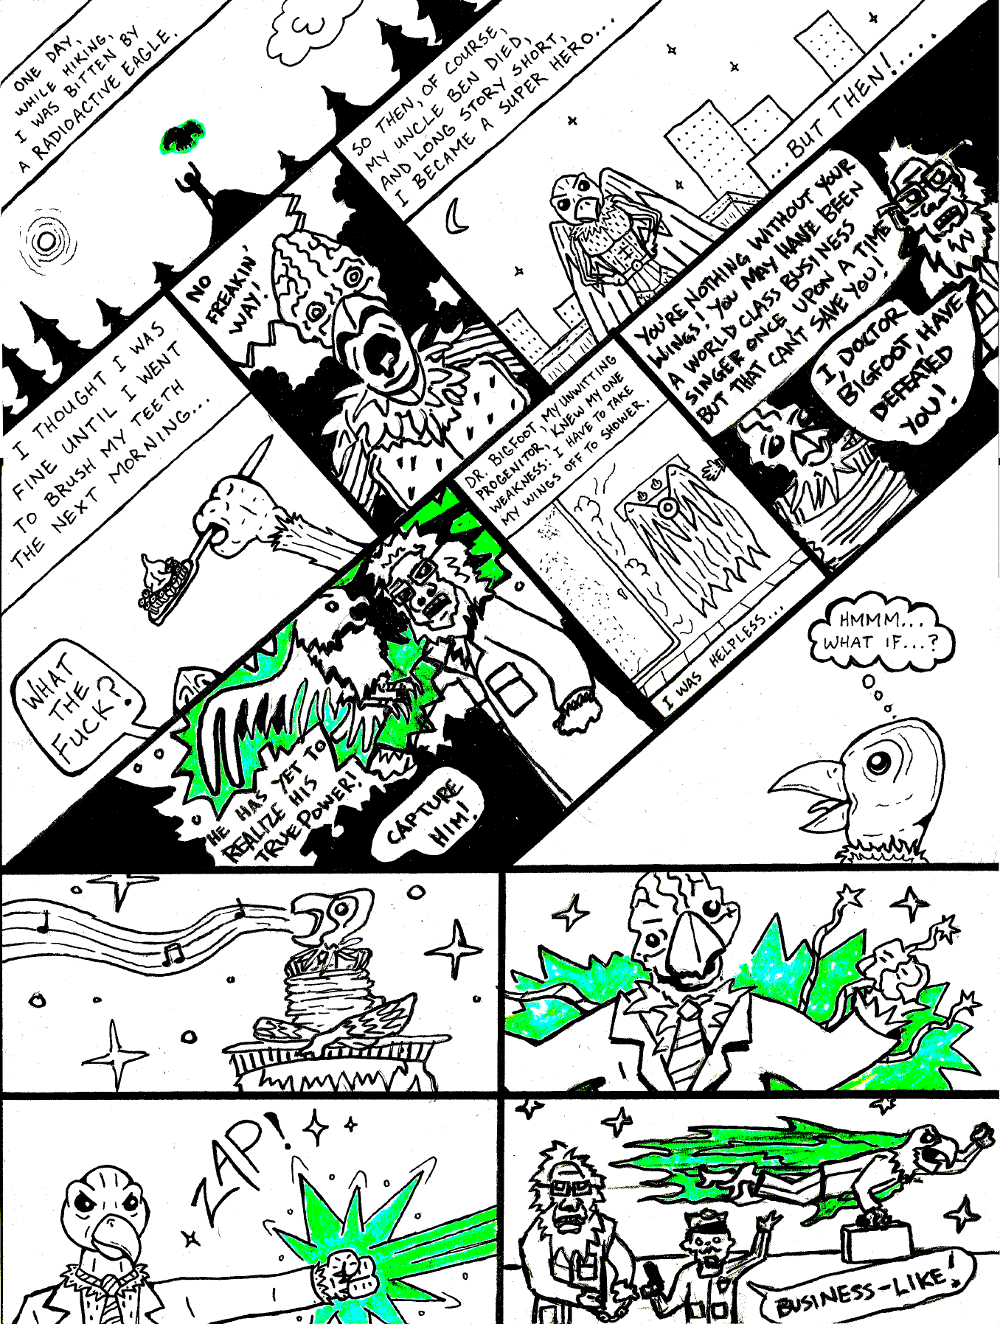 RADIOACTIVE EAGLE BUSINESS (by Marx McNeill and Nate Crone)